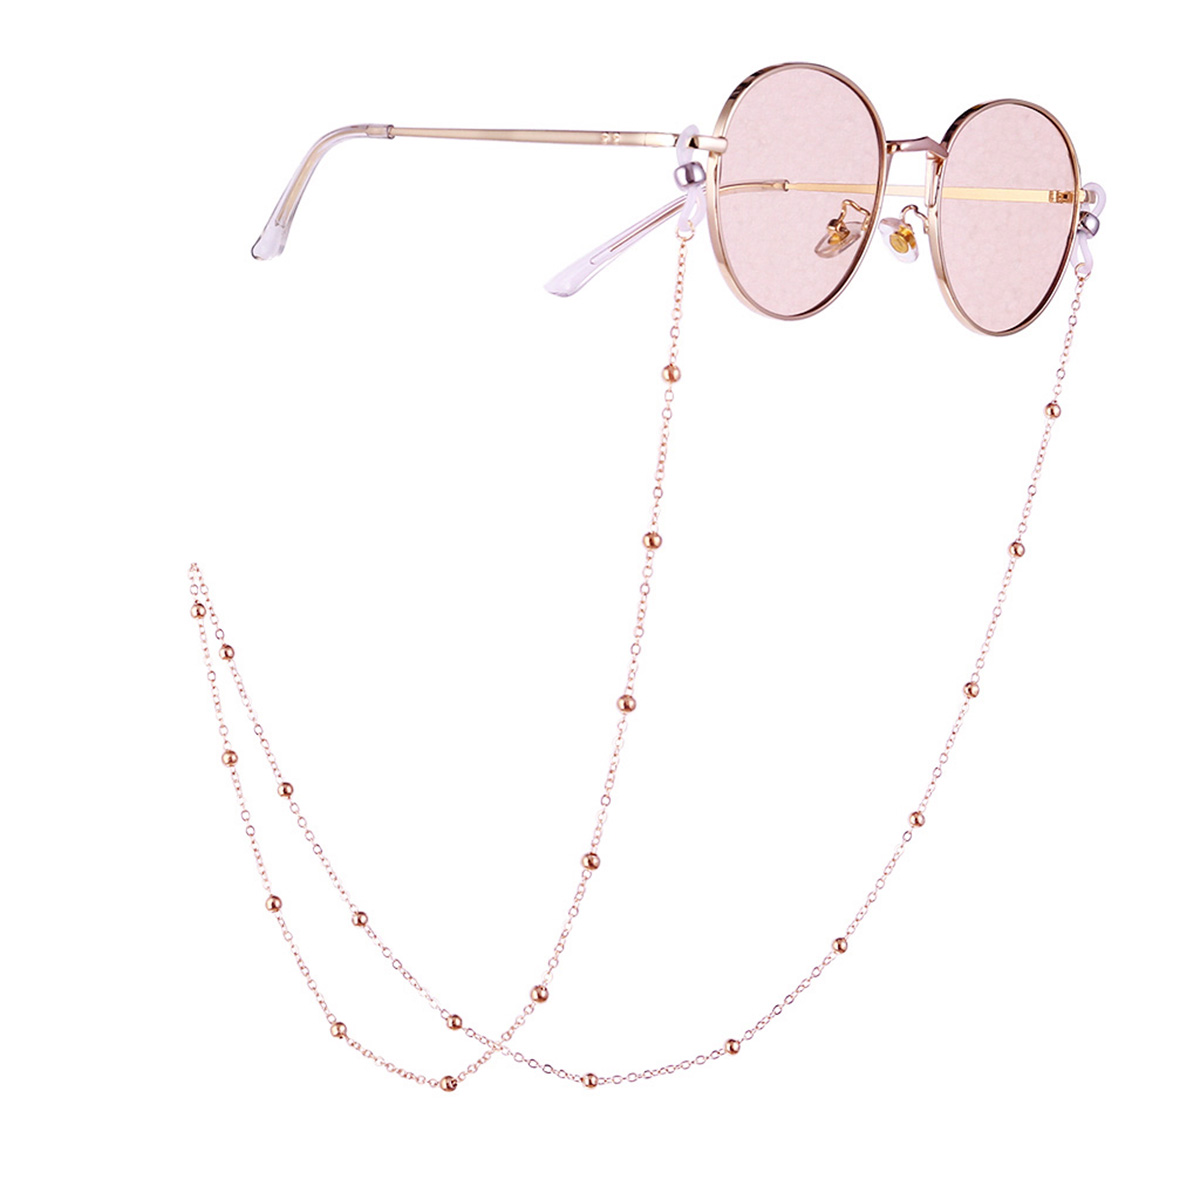 Glasses Chain Jewelry Ins Fashion Fresh Art Ladies Beads Hanging Neck Glasses Snow Chains 70CM 2019 New Hot